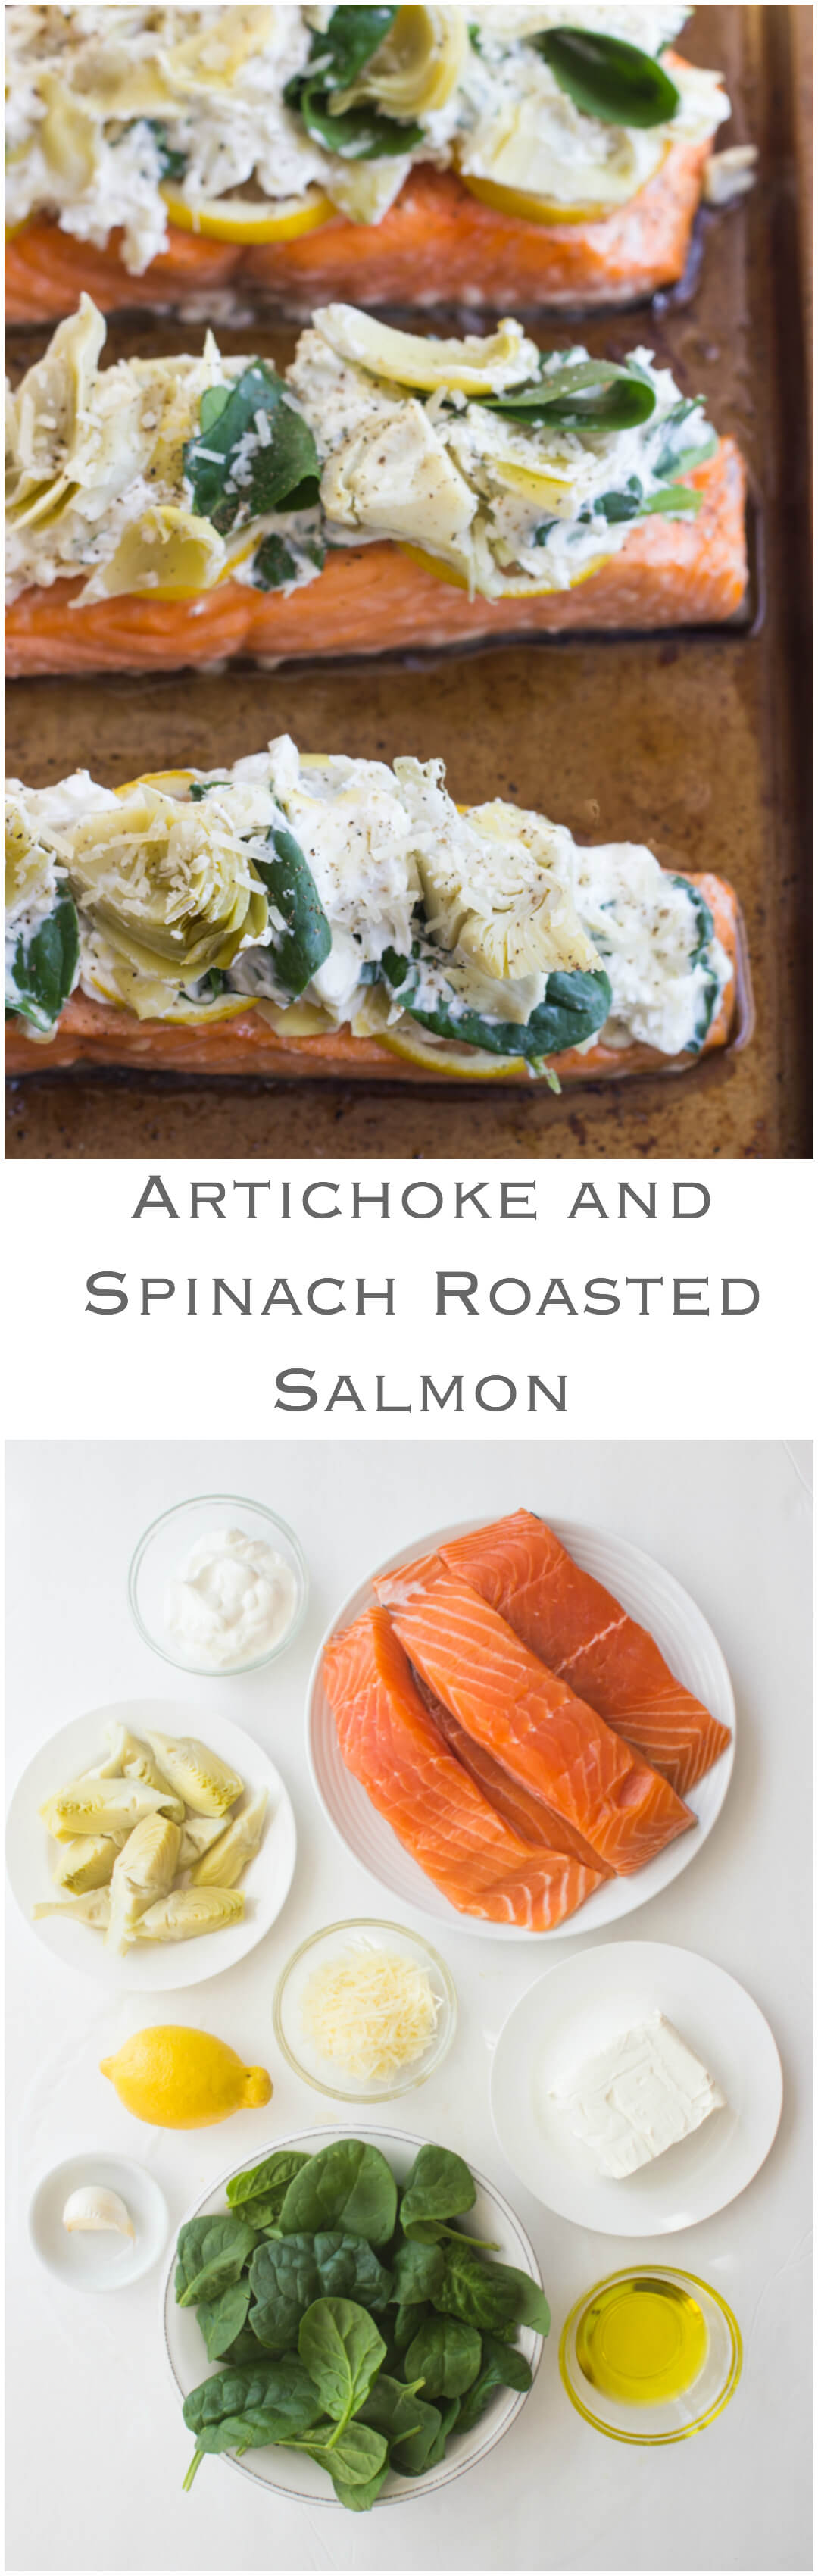 Artichoke And Spinach Roasted Salmon  Oven Roasted Salmon Topped With  Artichoke And Spinach Dip!